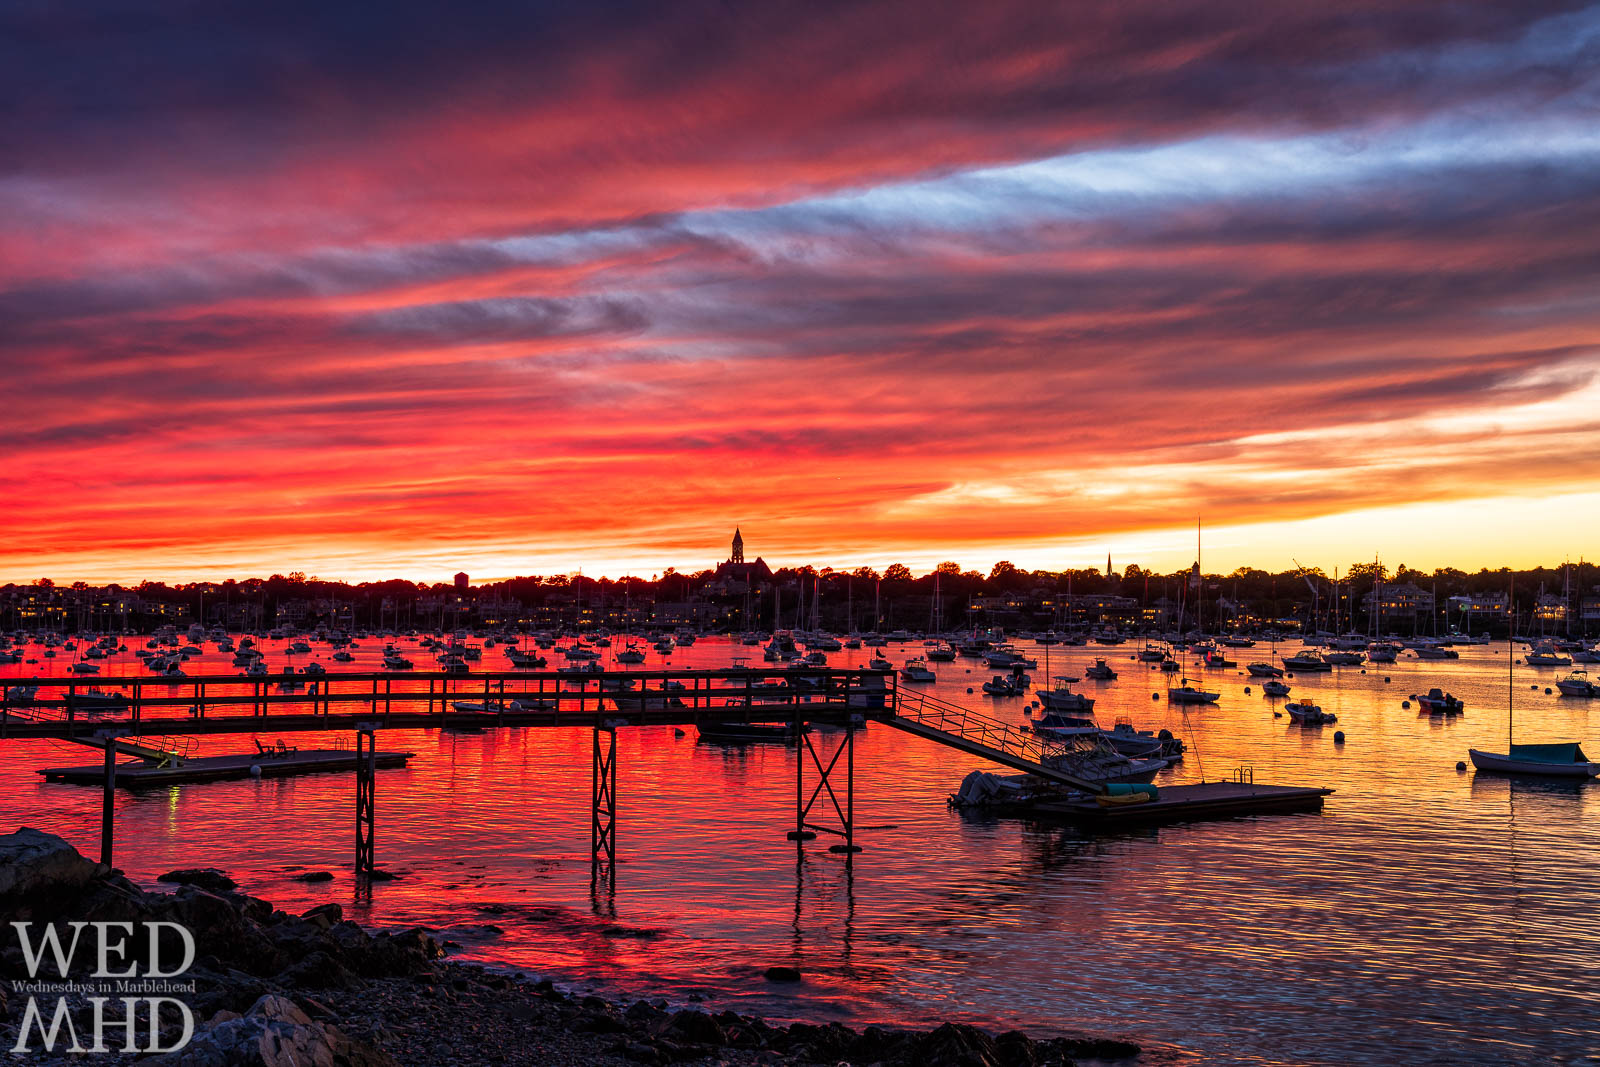 The end of the afterglow reveals a red sky at night to delight sailors in Marblehead and elsewhere